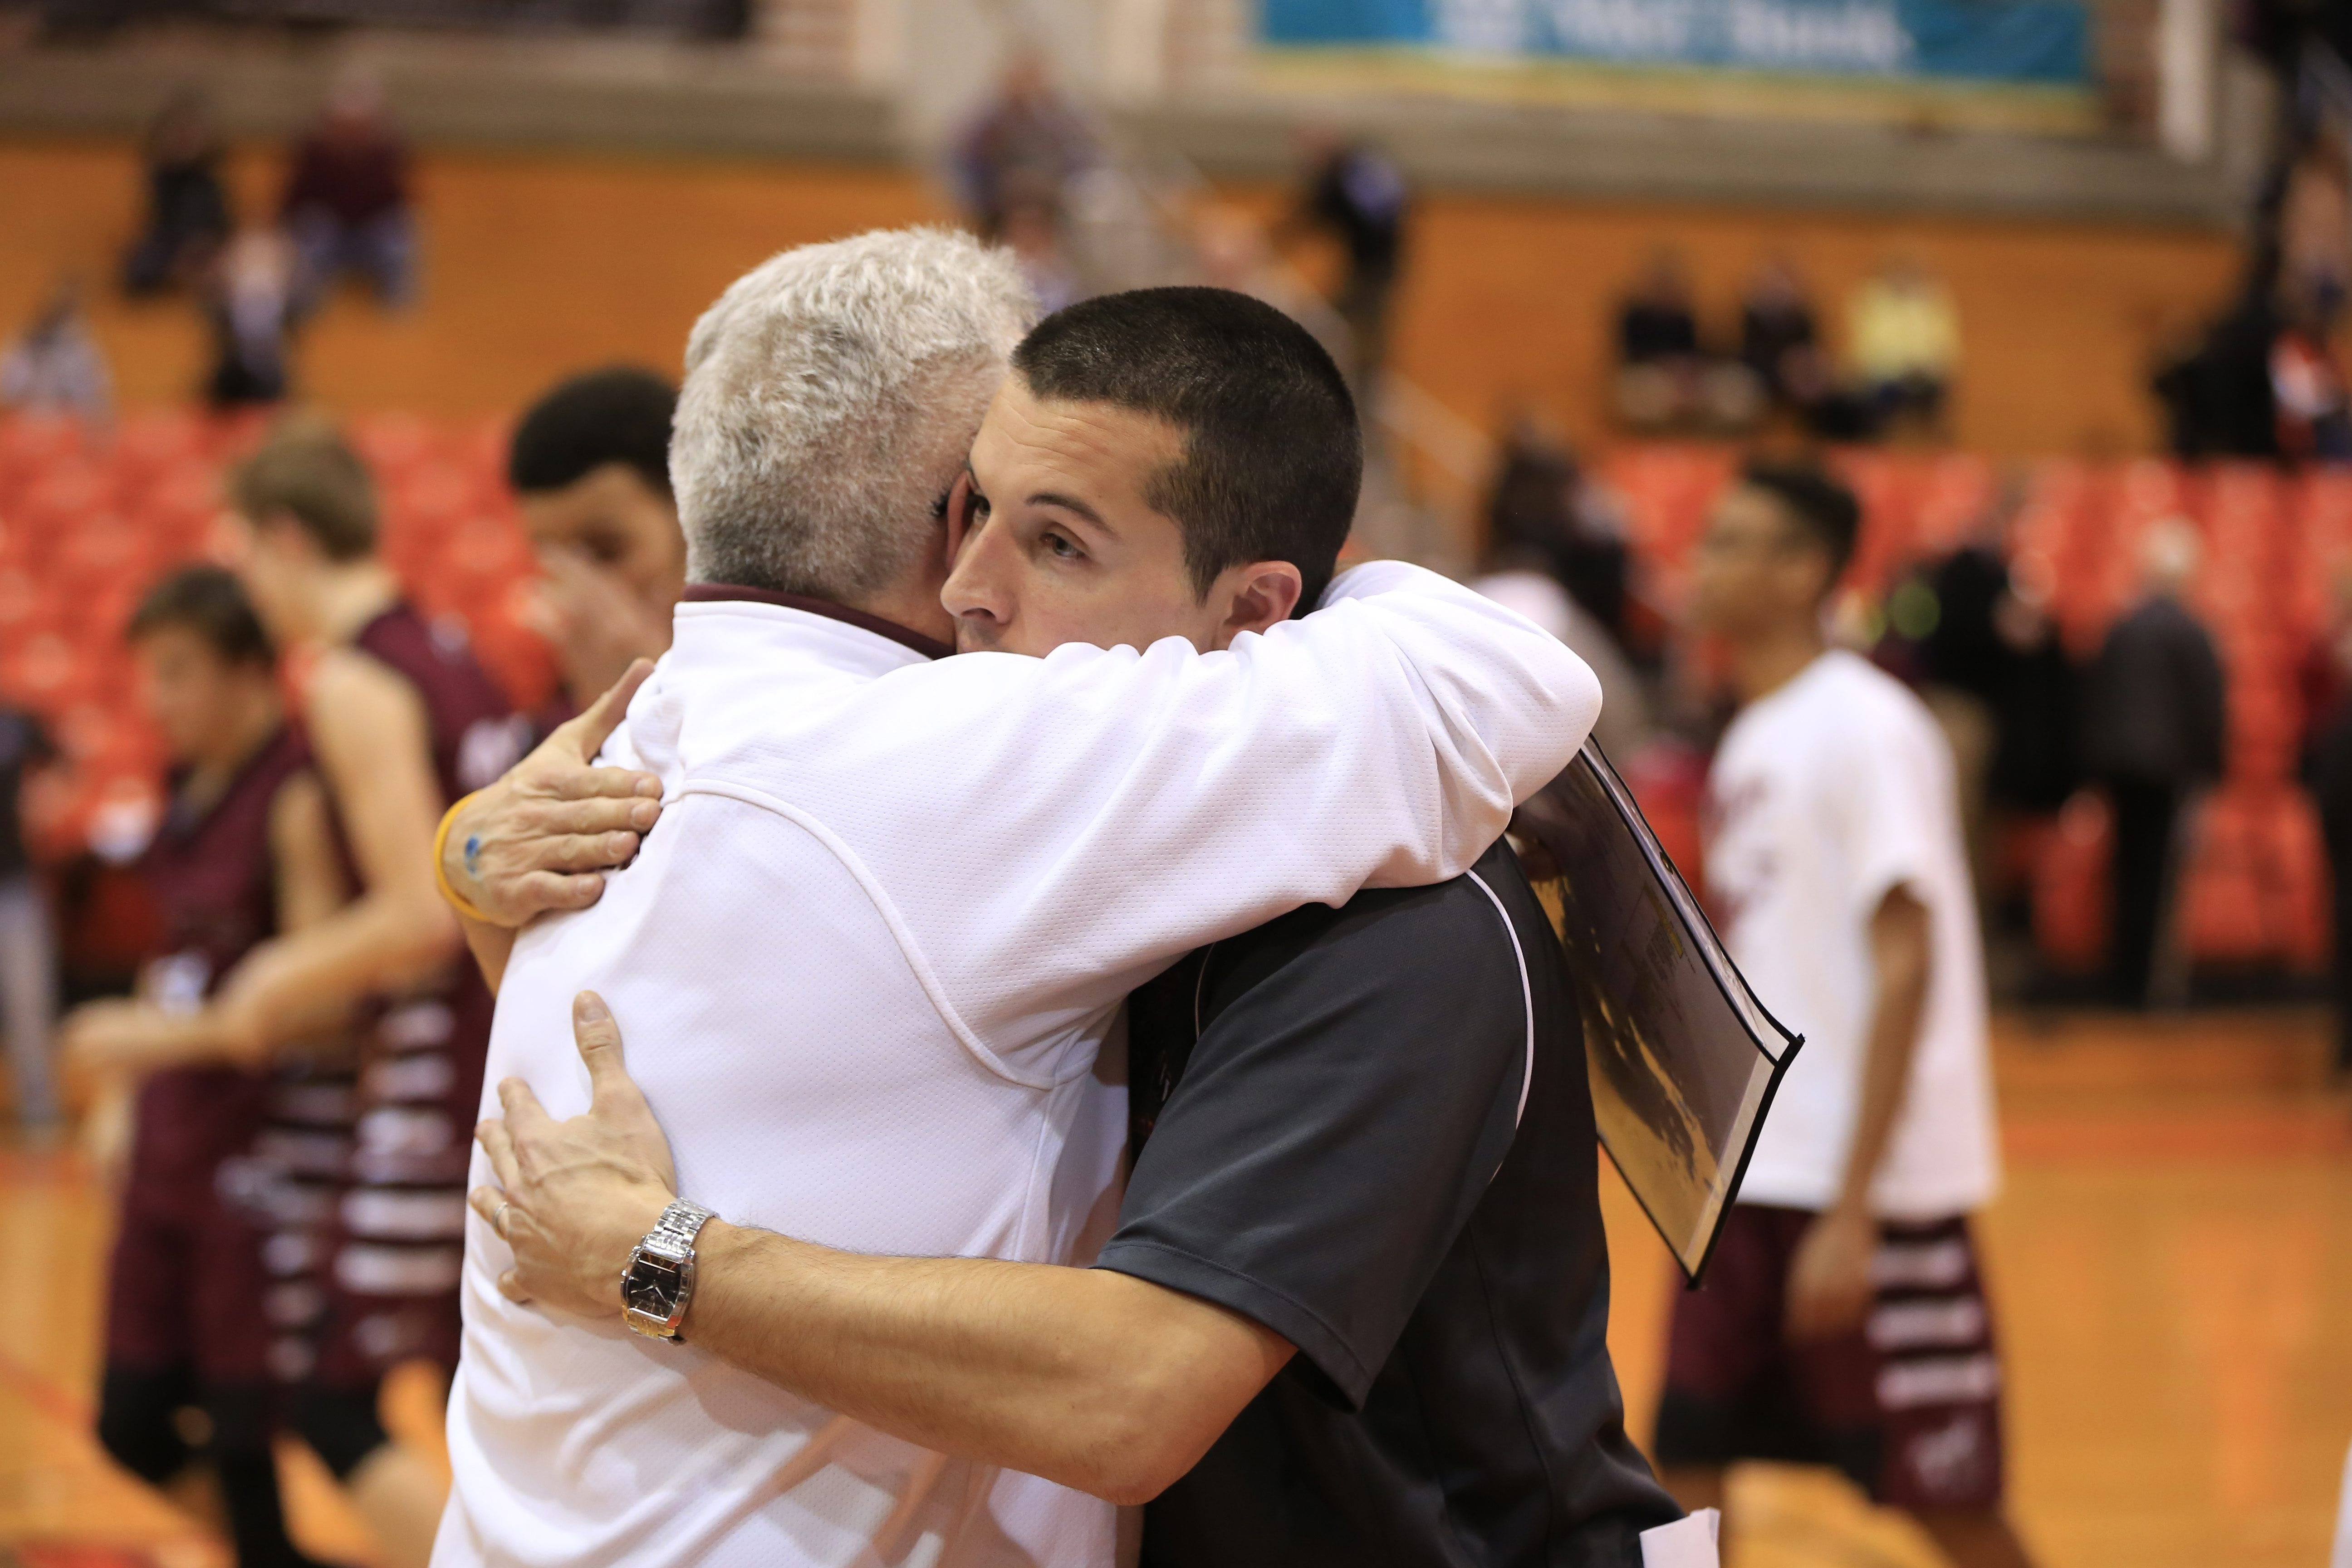 Maryvale coach Mark Kensy and son Chris, coach of Amherst, embrace after  Amherst defeated Maryvale in the A-2 semifinals at the Buffalo State Sports Arena. (Harry Scull Jr./Buffalo News)